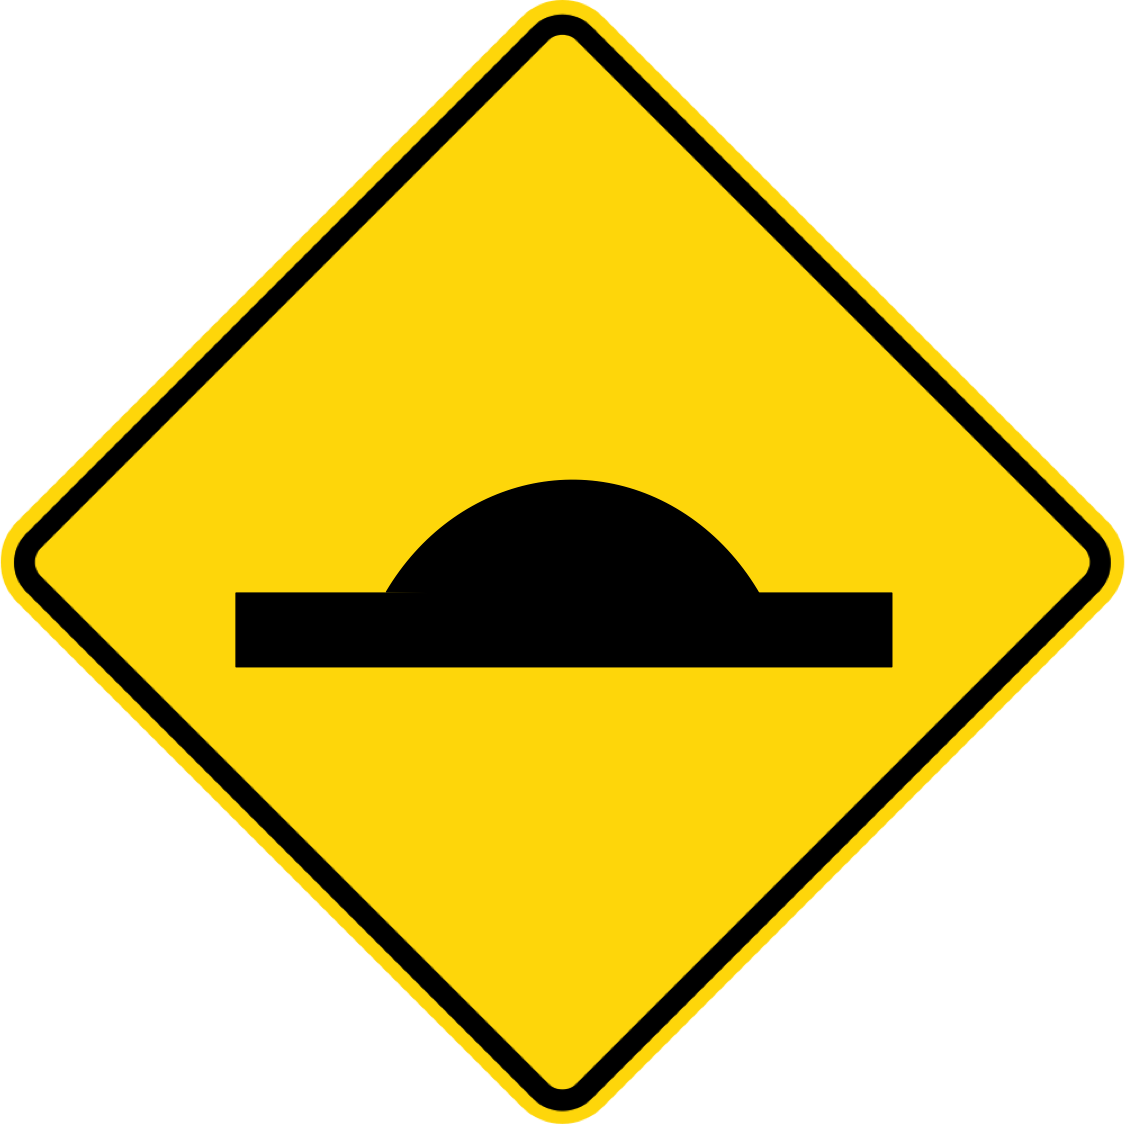 File:Indonesian Road Sign 6b.png